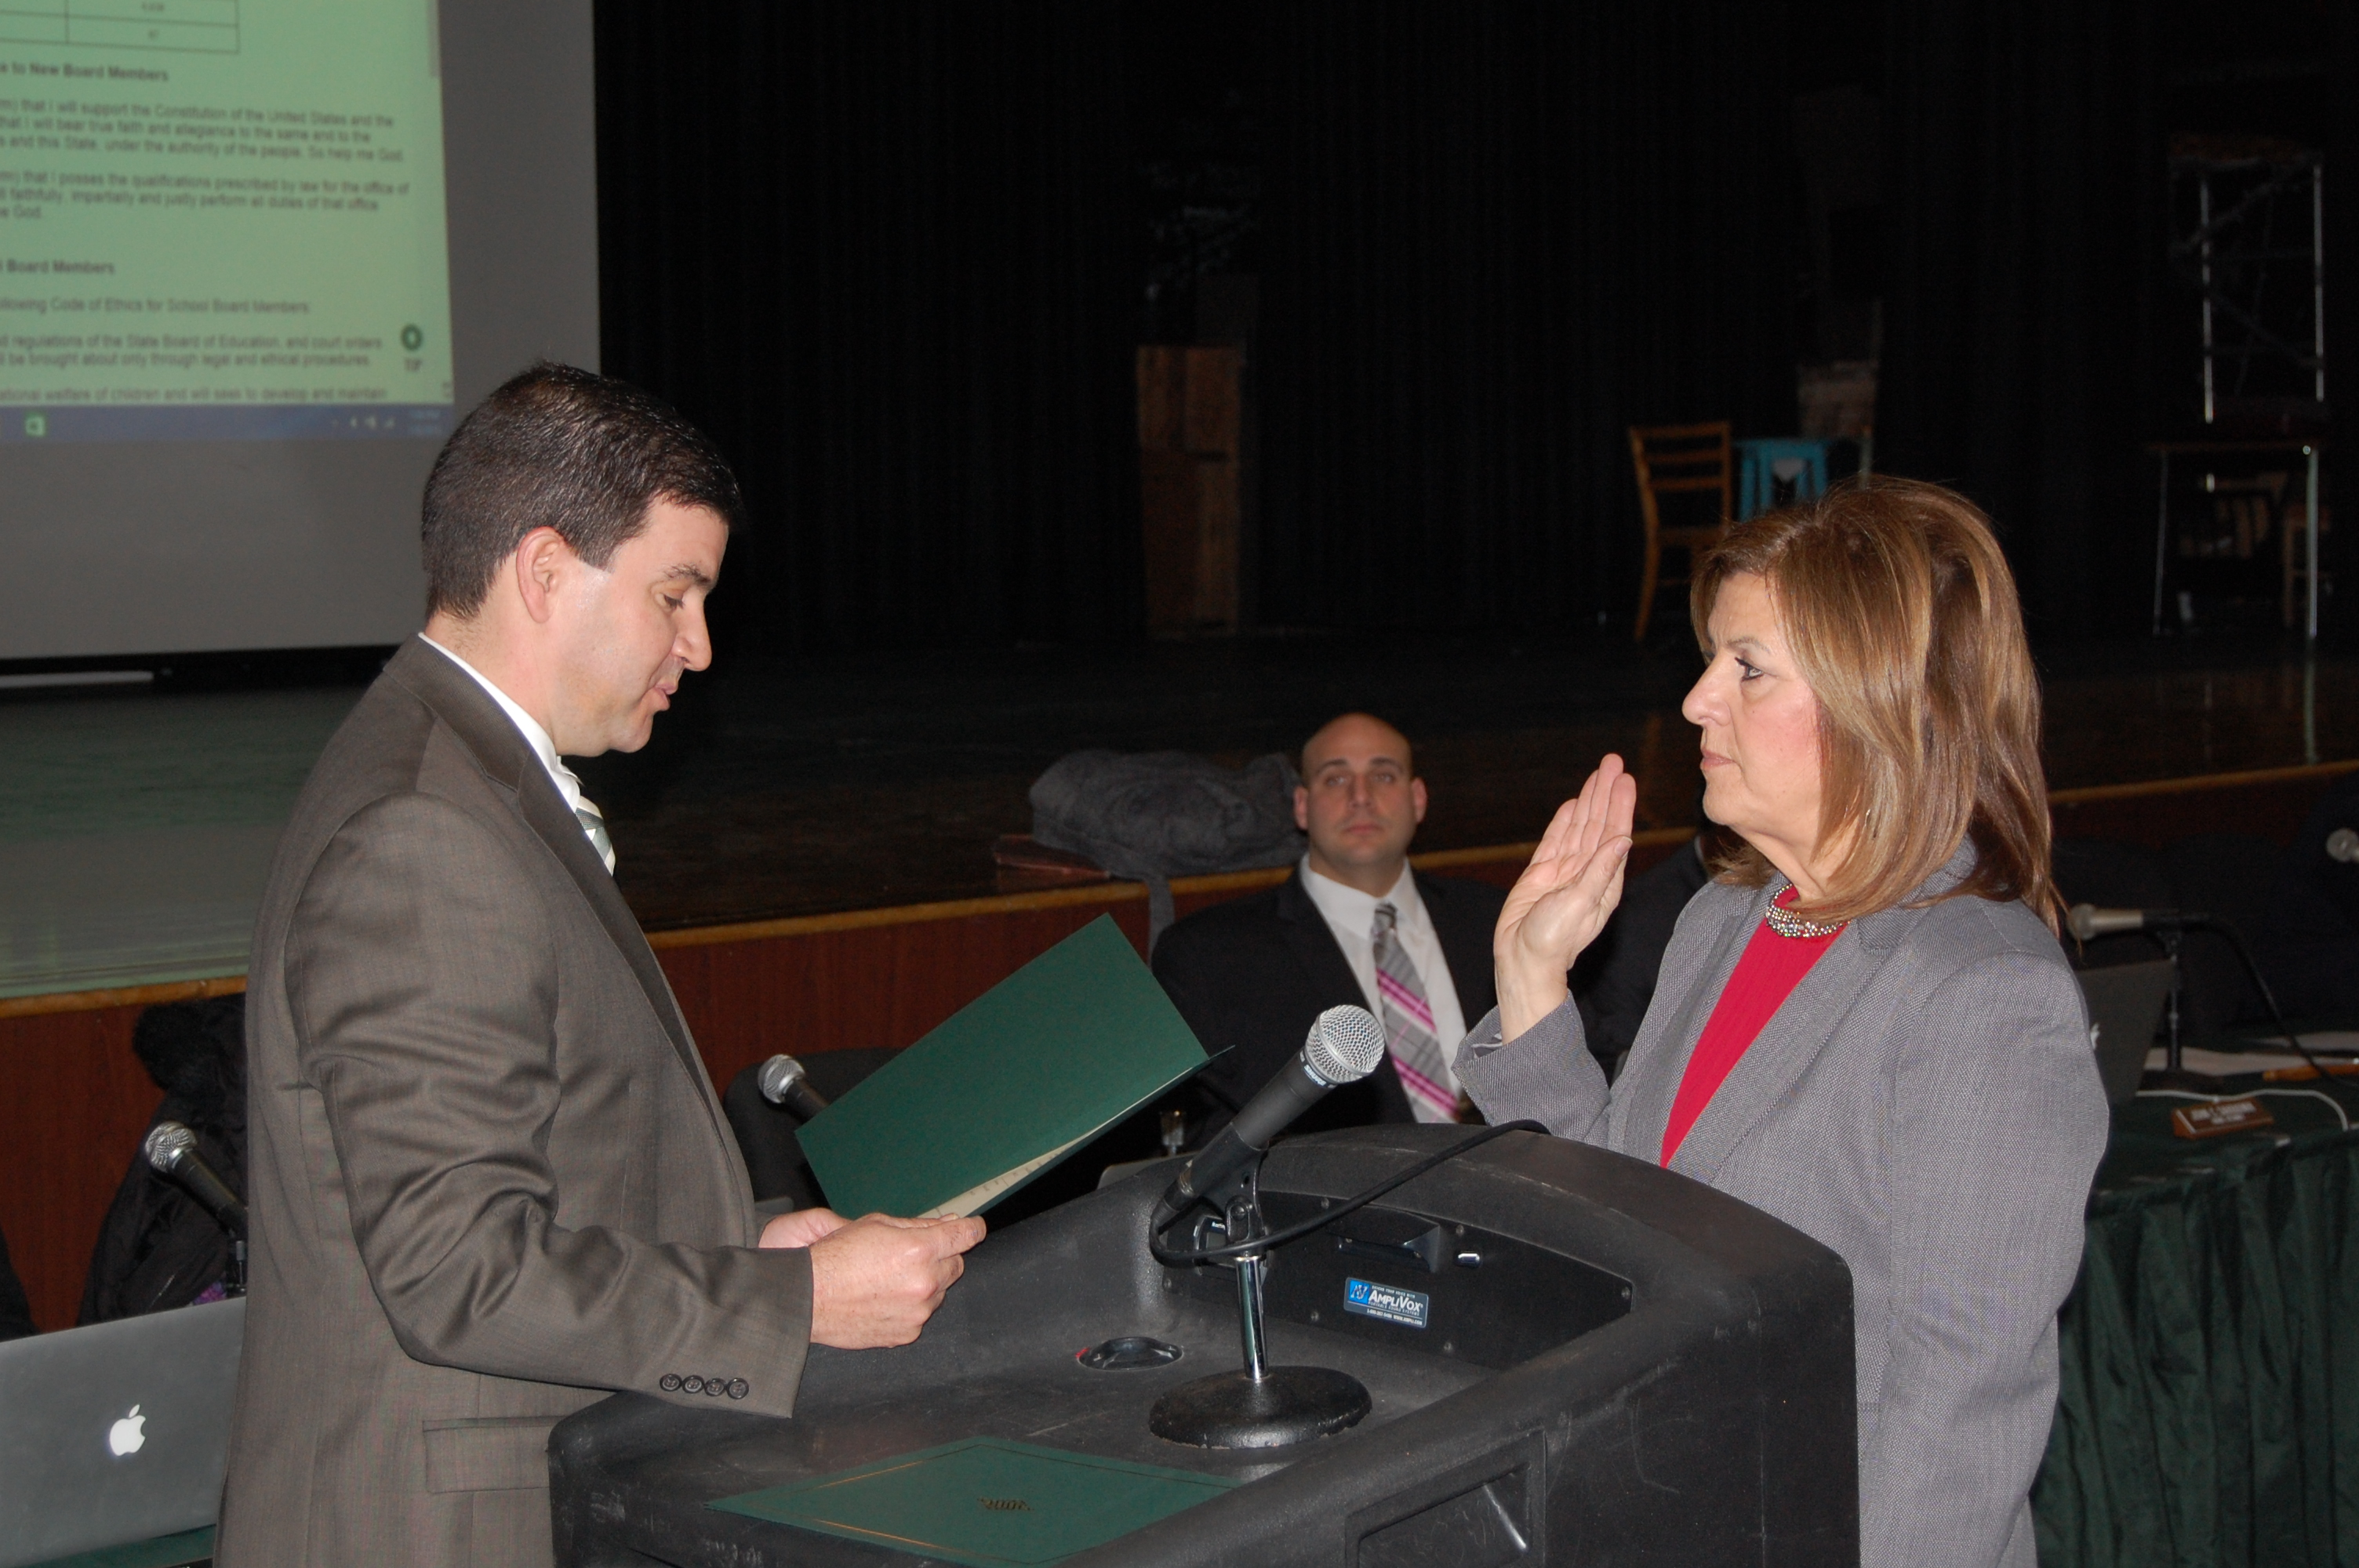 Sharon Cantillo is sworn in by Business Administrator James Edwards as Brick BOE President. (Photo: Daniel Nee)